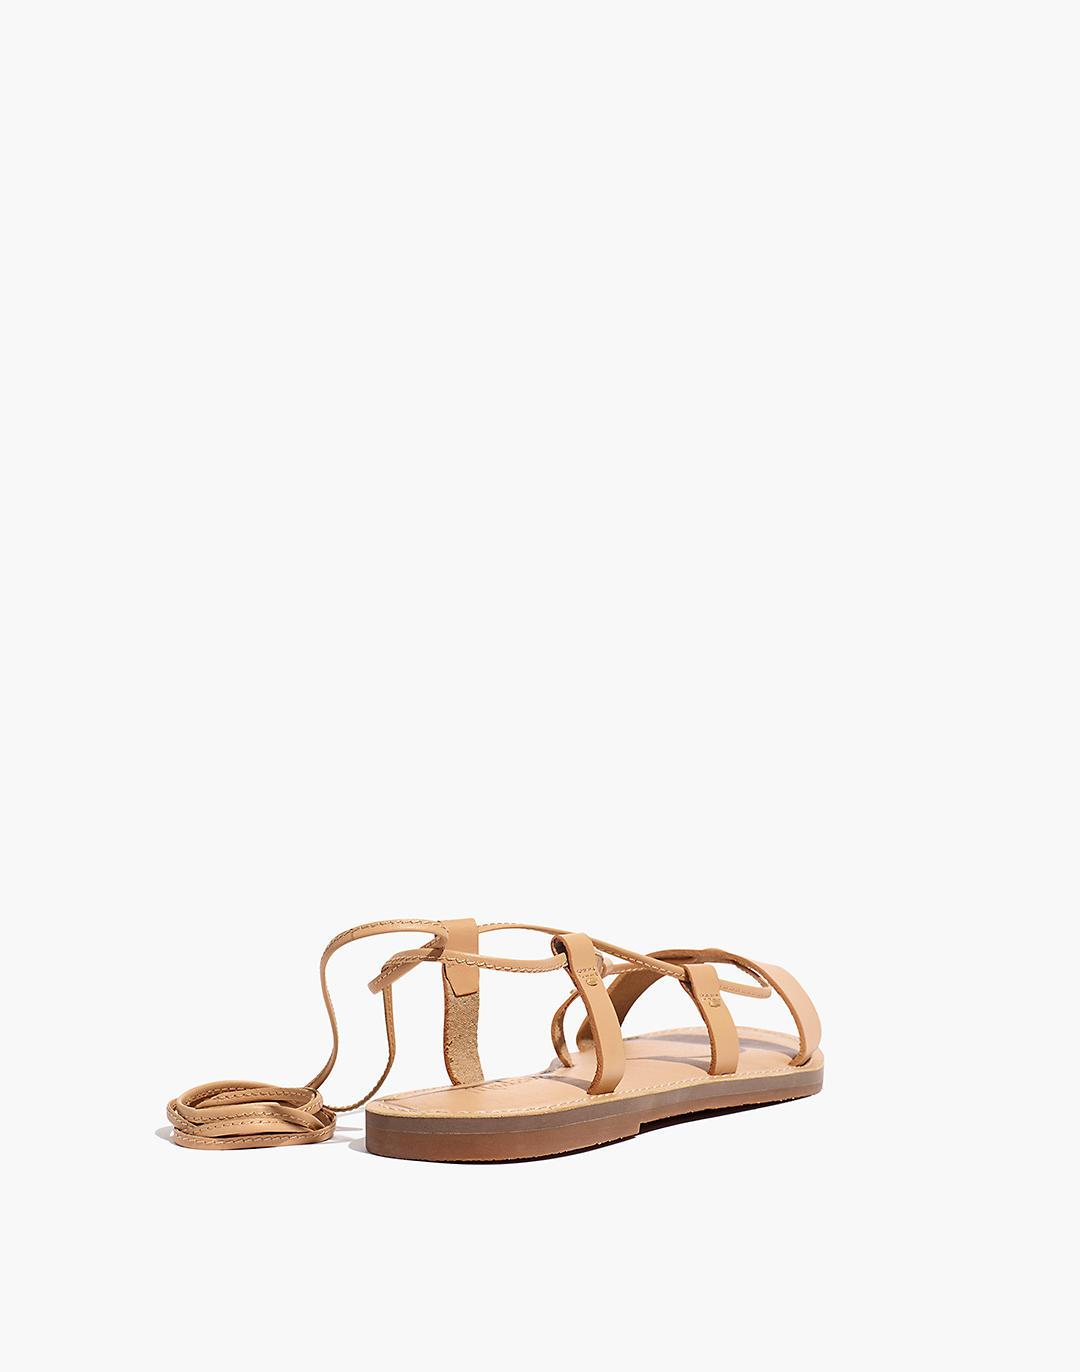 The Boardwalk Lace-Up Sandal in Leather 2